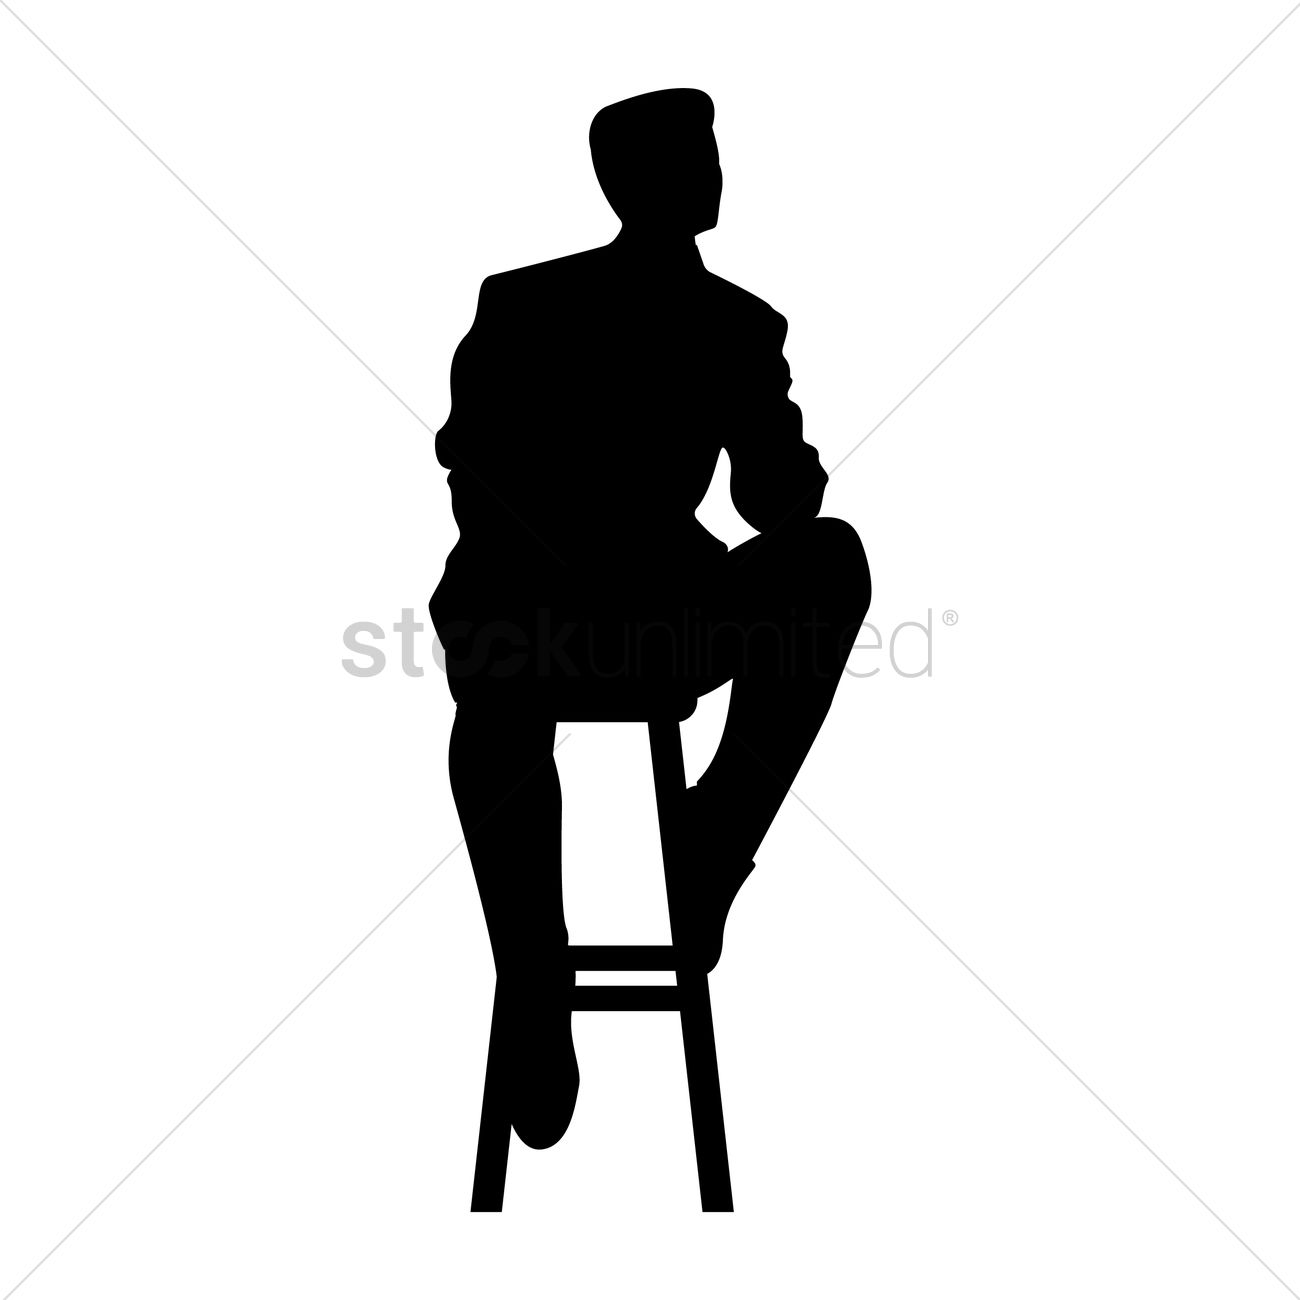 chair design bangladesh polycarbonate mat silhouette of man sitting on stool vector image - 1632976   stockunlimited